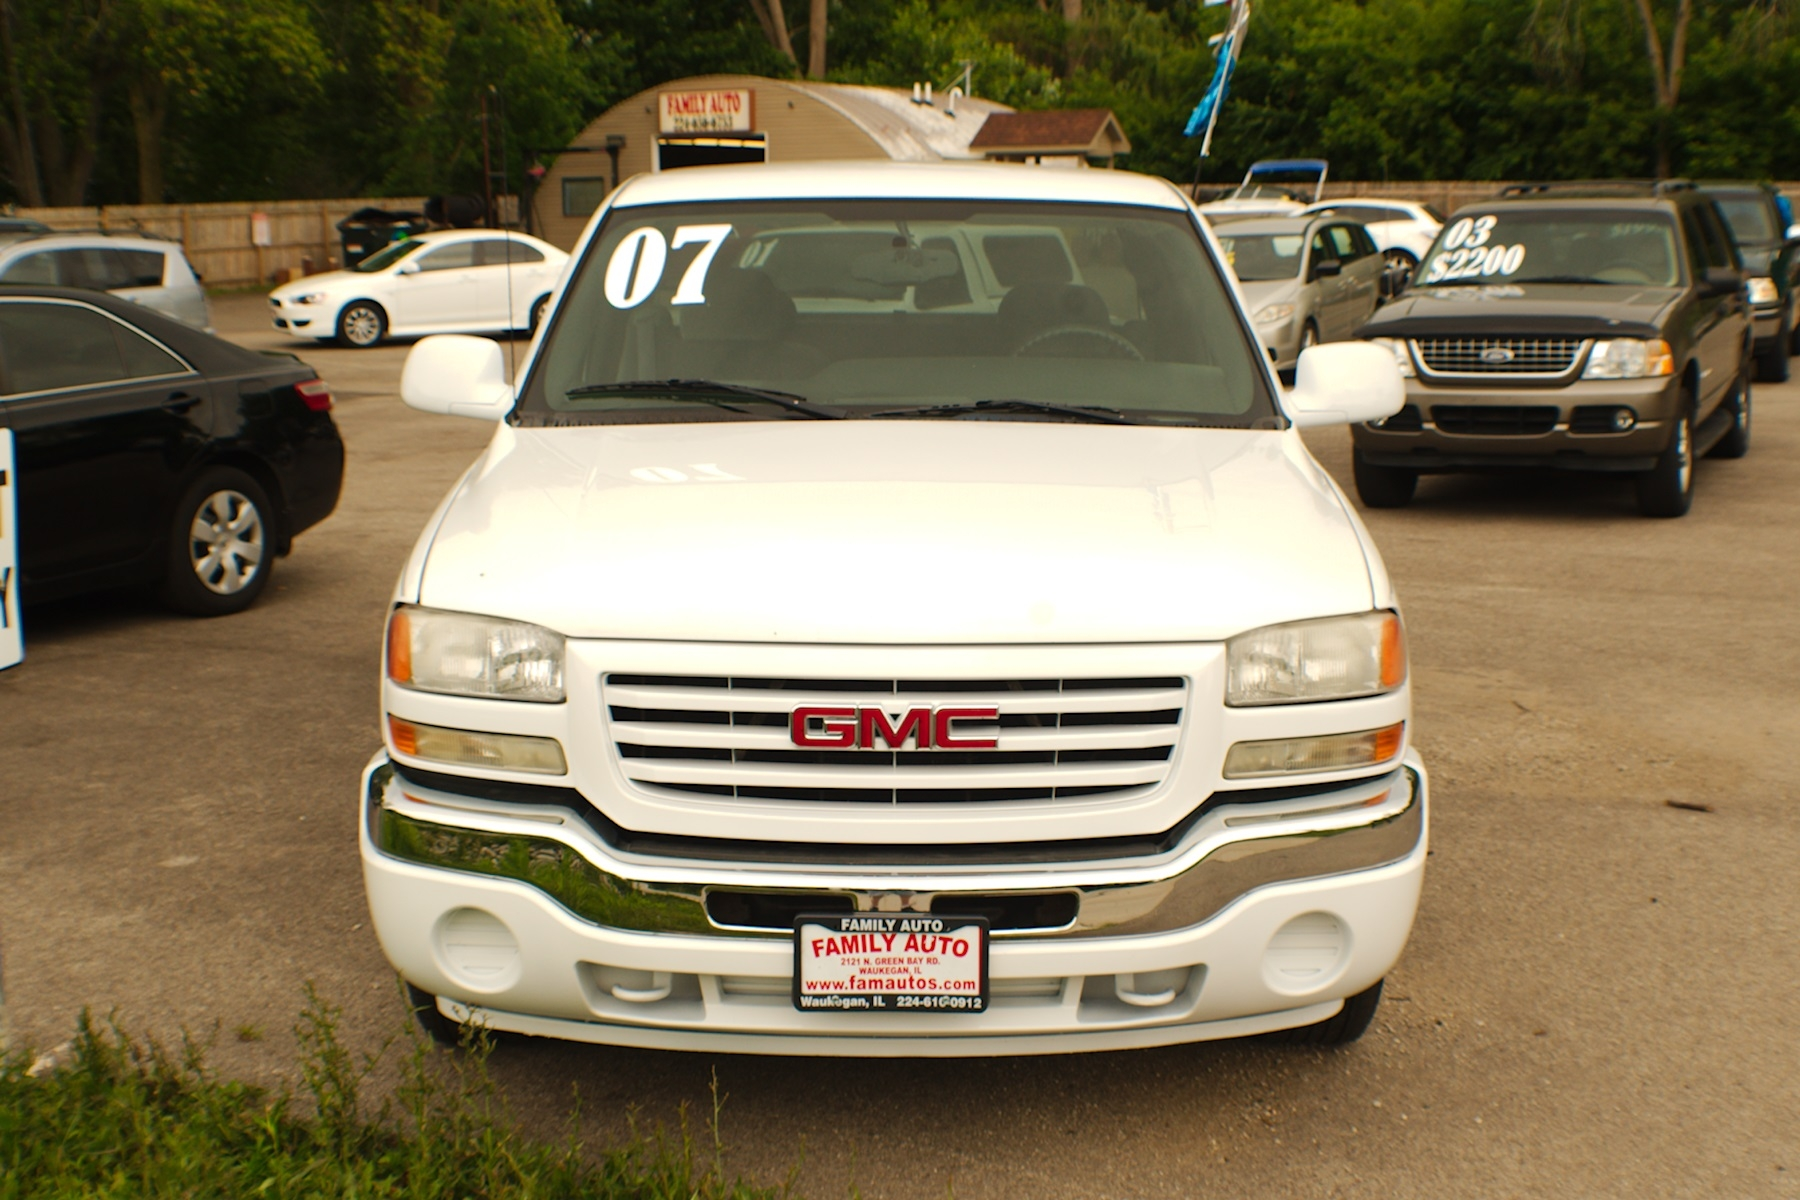 2007 GMC Sierra White Used 4x2 Ext Cab Used Truck Sale Gurnee Kenosha Mchenry Chicago Illinois